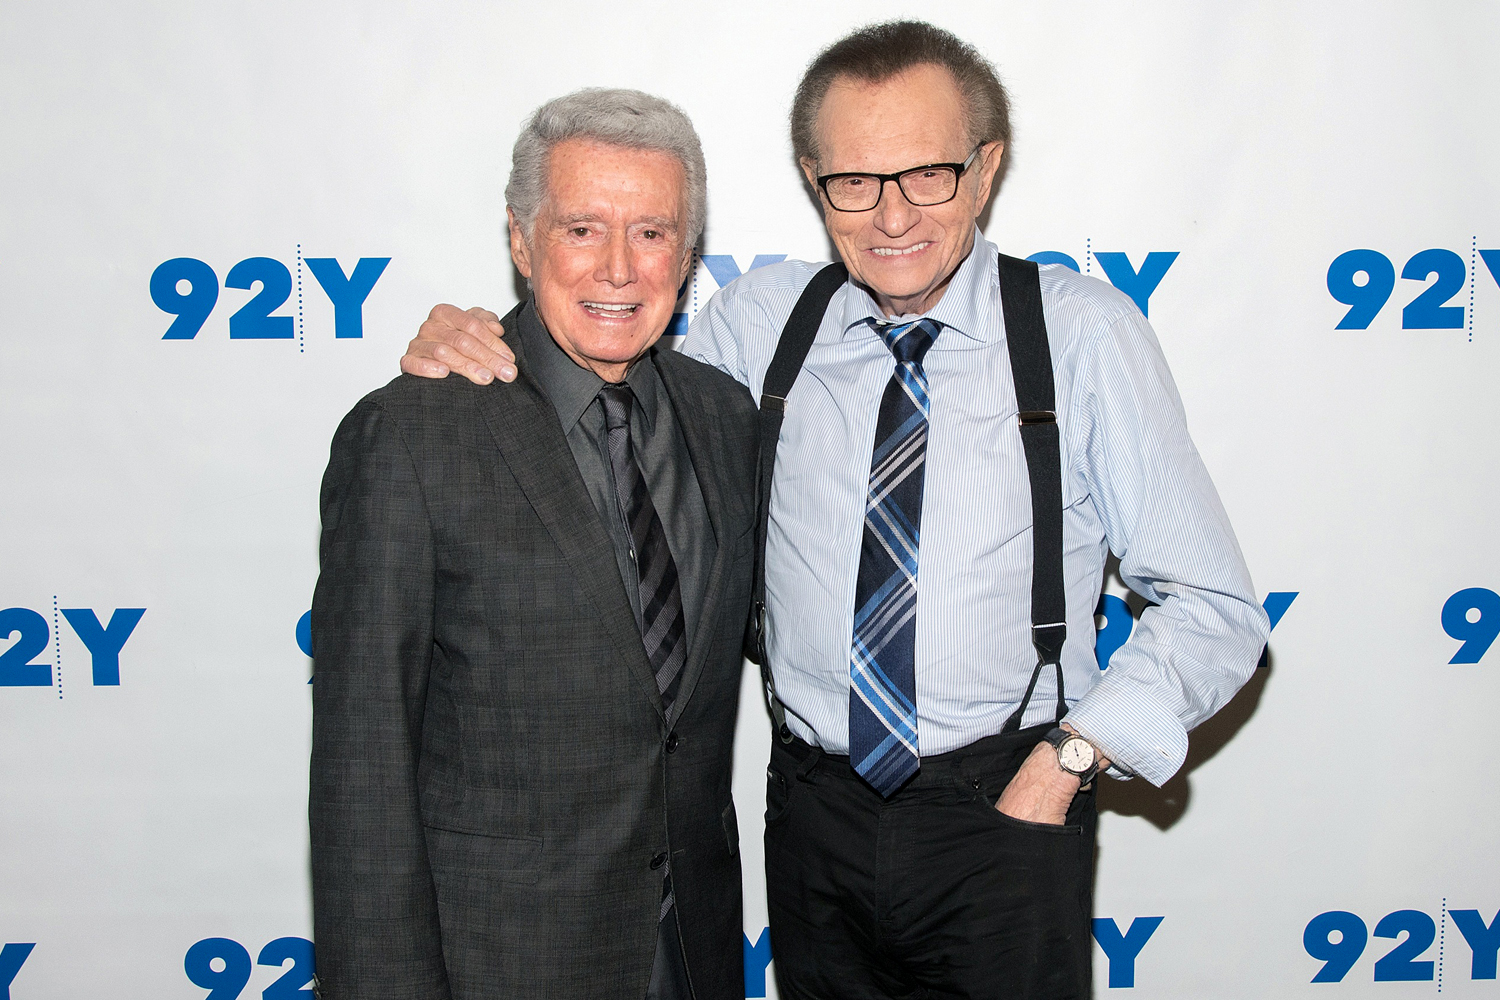 Regis Philbin and Larry King